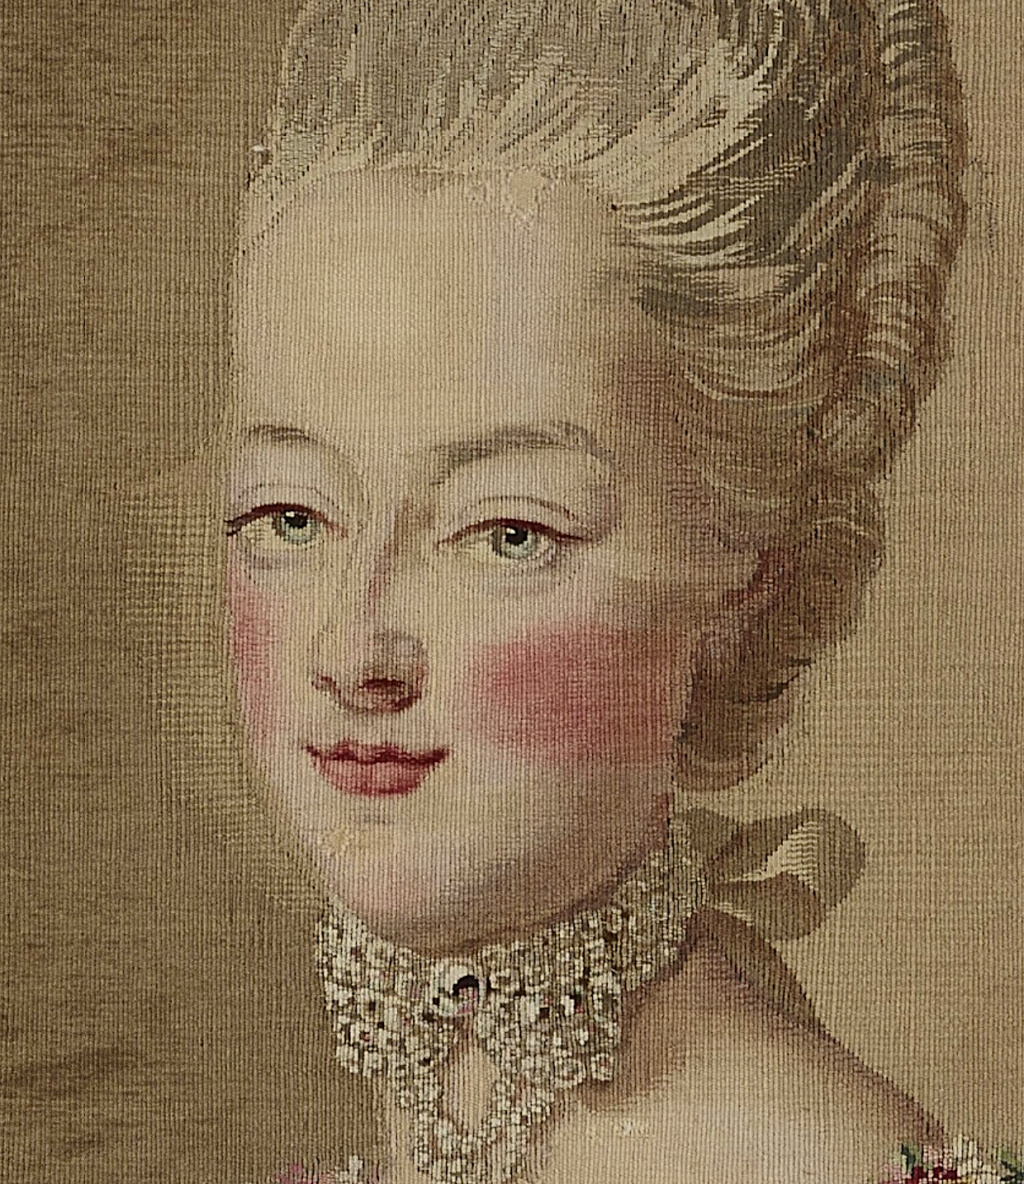 Tapisseries des Gobelins, atelier Cozette : collection de portraits, dont ceux de Marie-Antoinette Ma_tap10